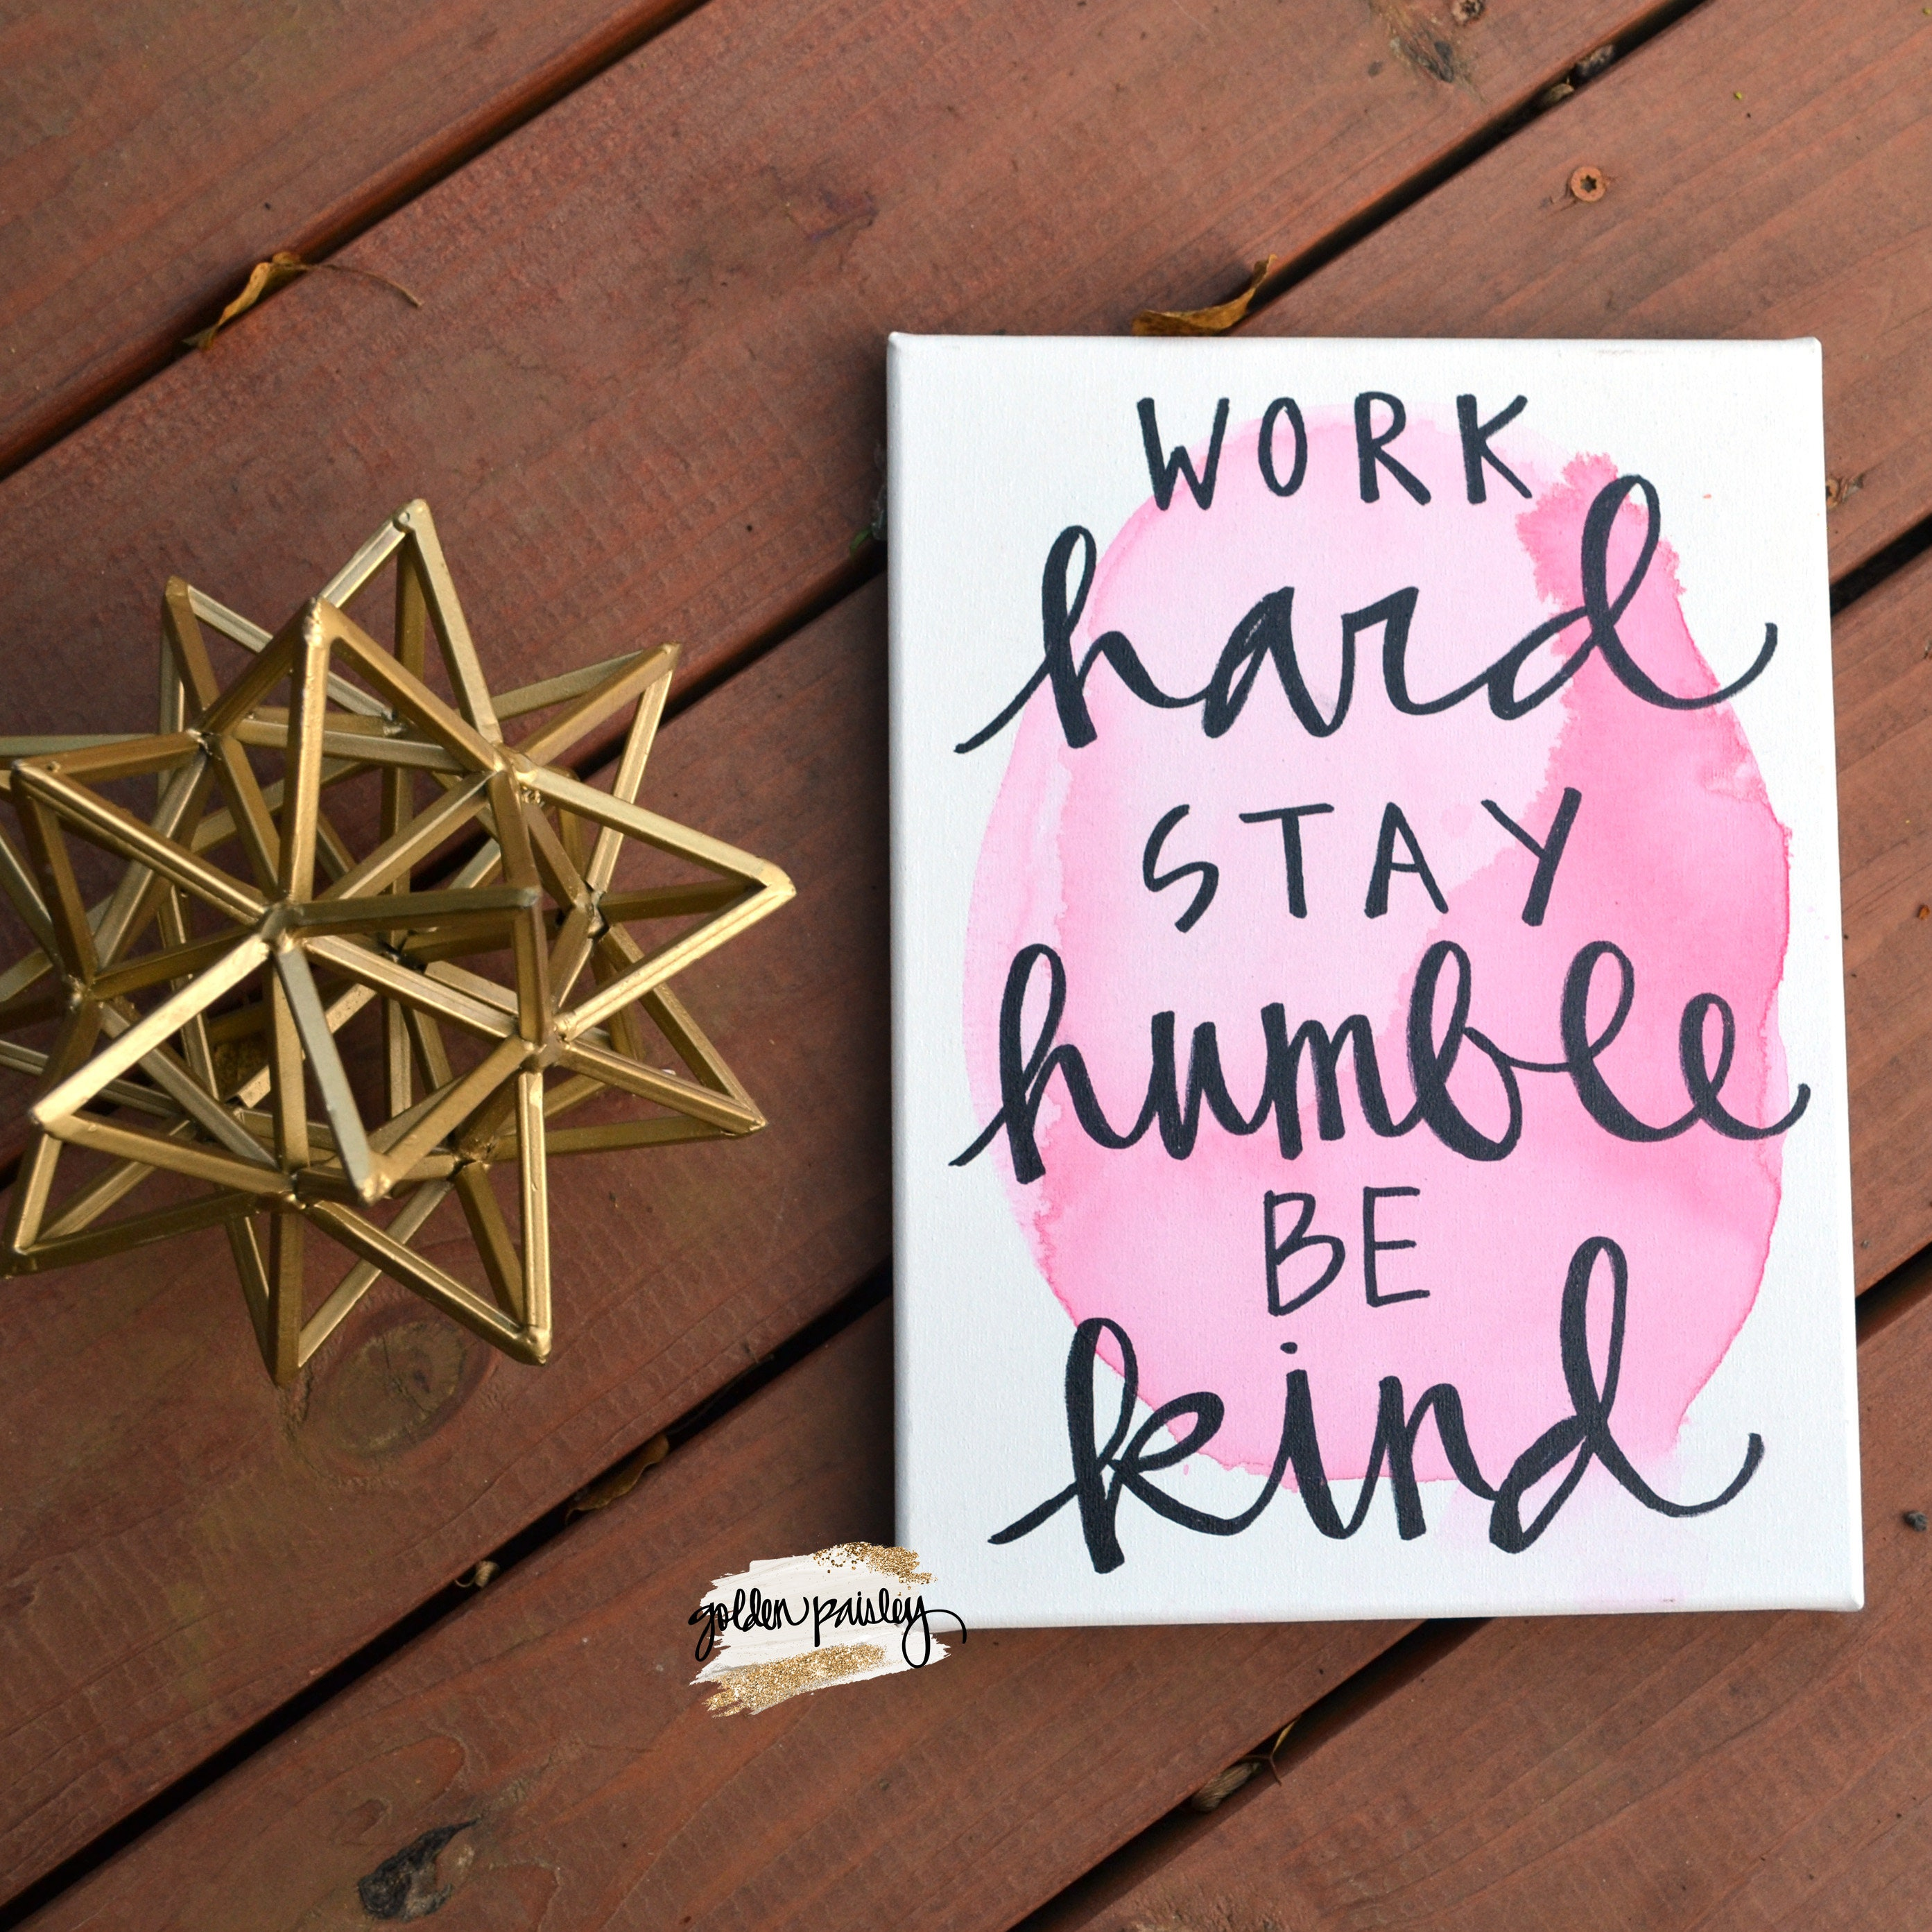 Inspirational Watercolor Quote Wall Art Canvas Wall Decor Sign Canvas Painting Home Office Pink Work Hard Stay Humble Canvas Quote Art Sign